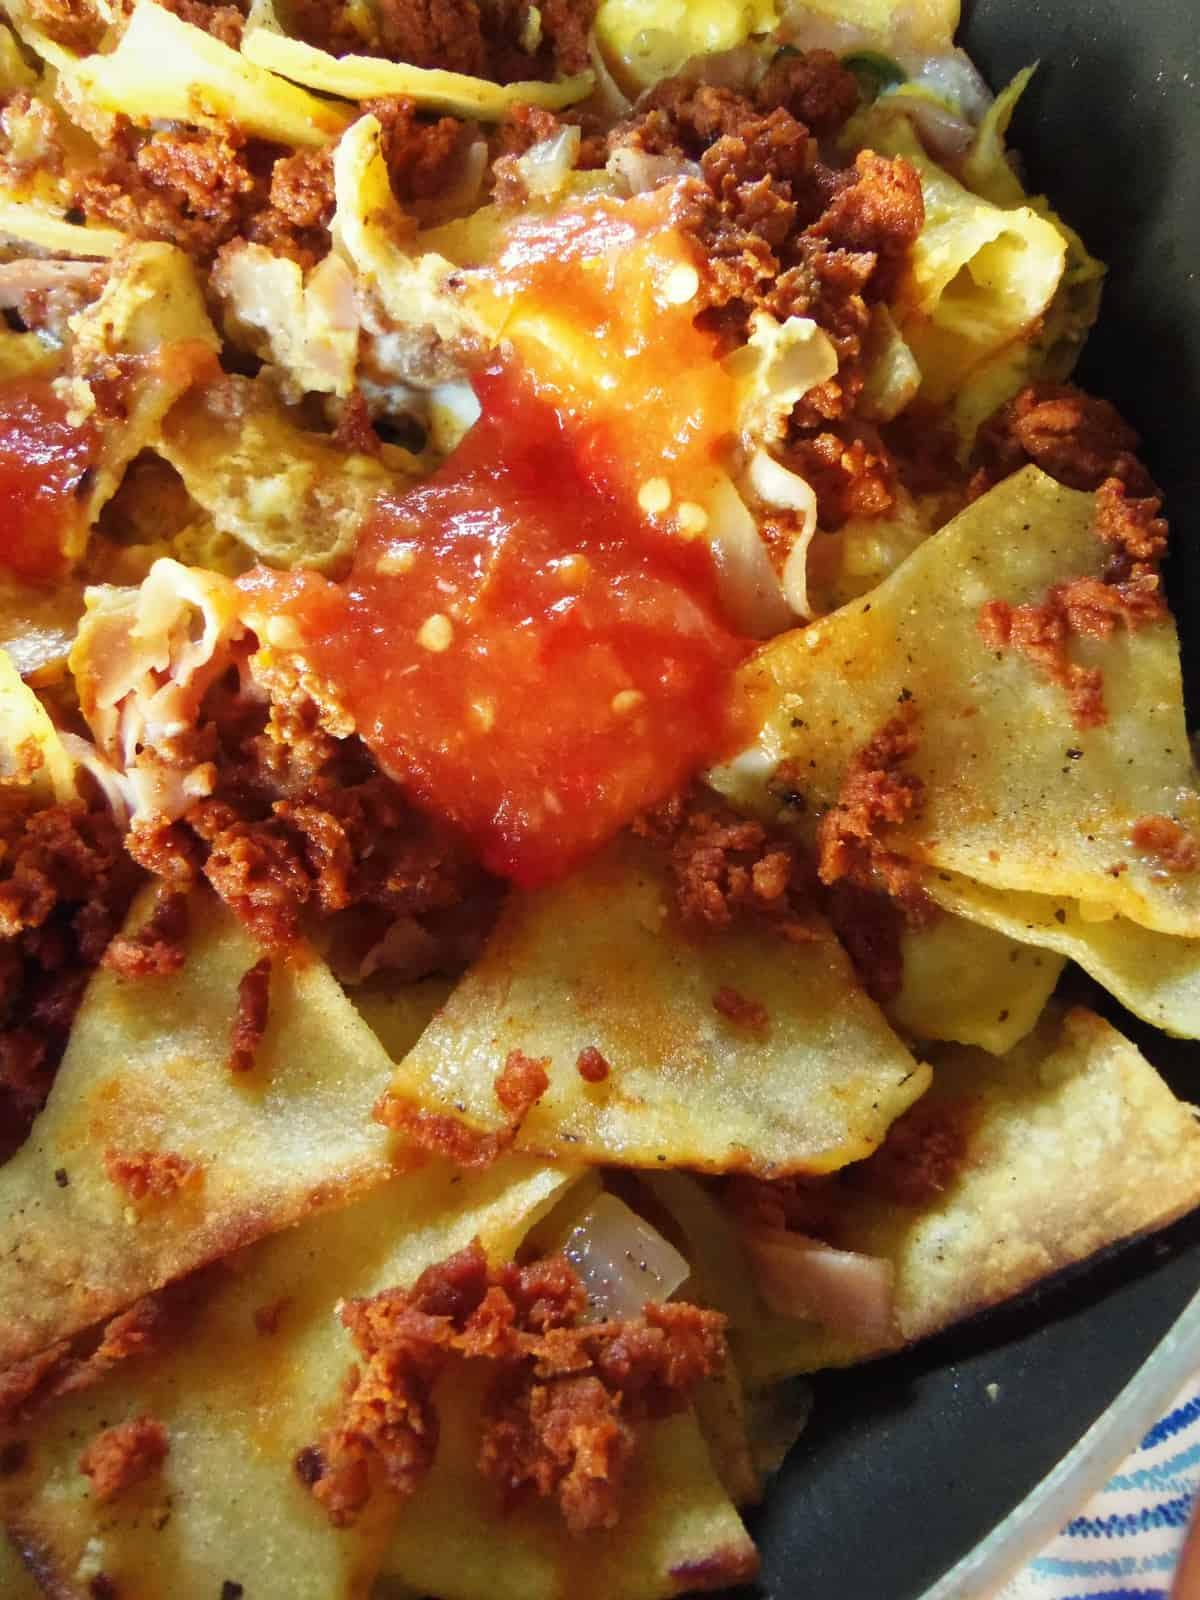 Migas, torn or cut pieces of tortilla mixed with eggs and chorizo